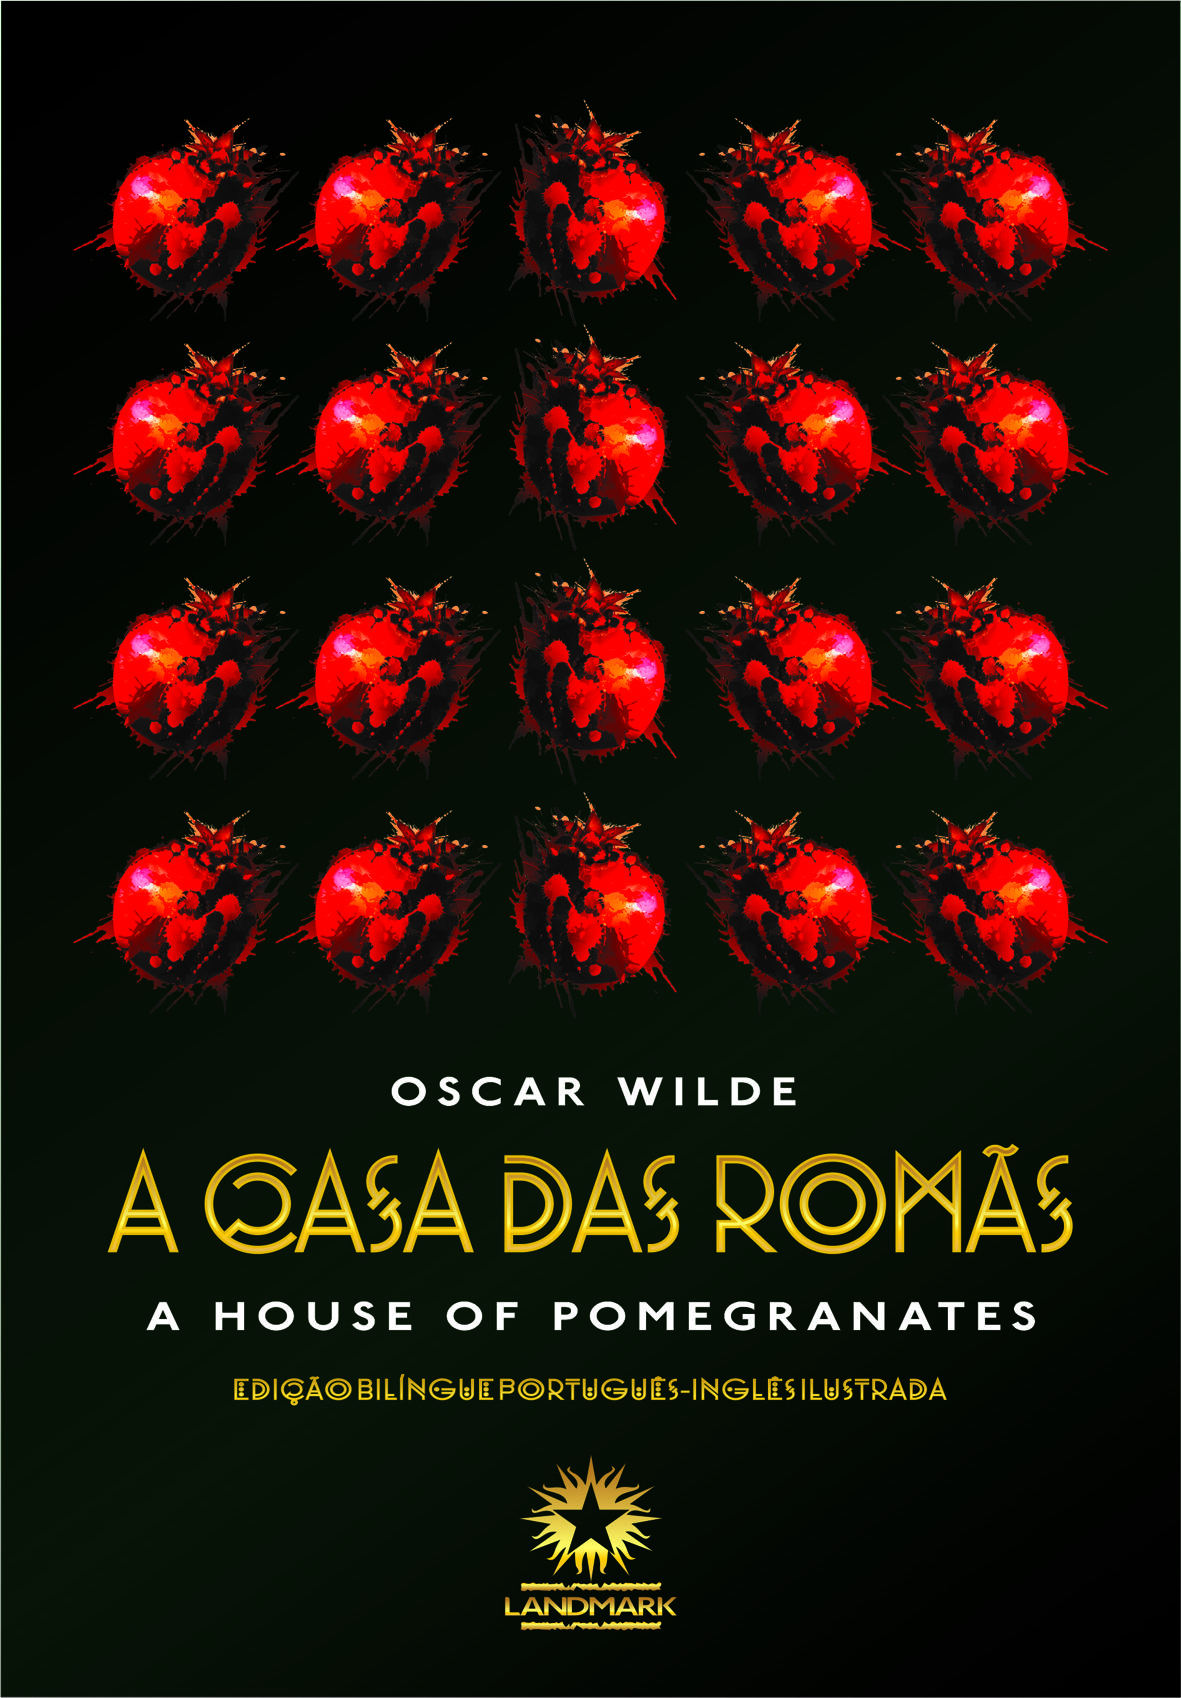 A Casa das Romãs: The House of Pomegranates